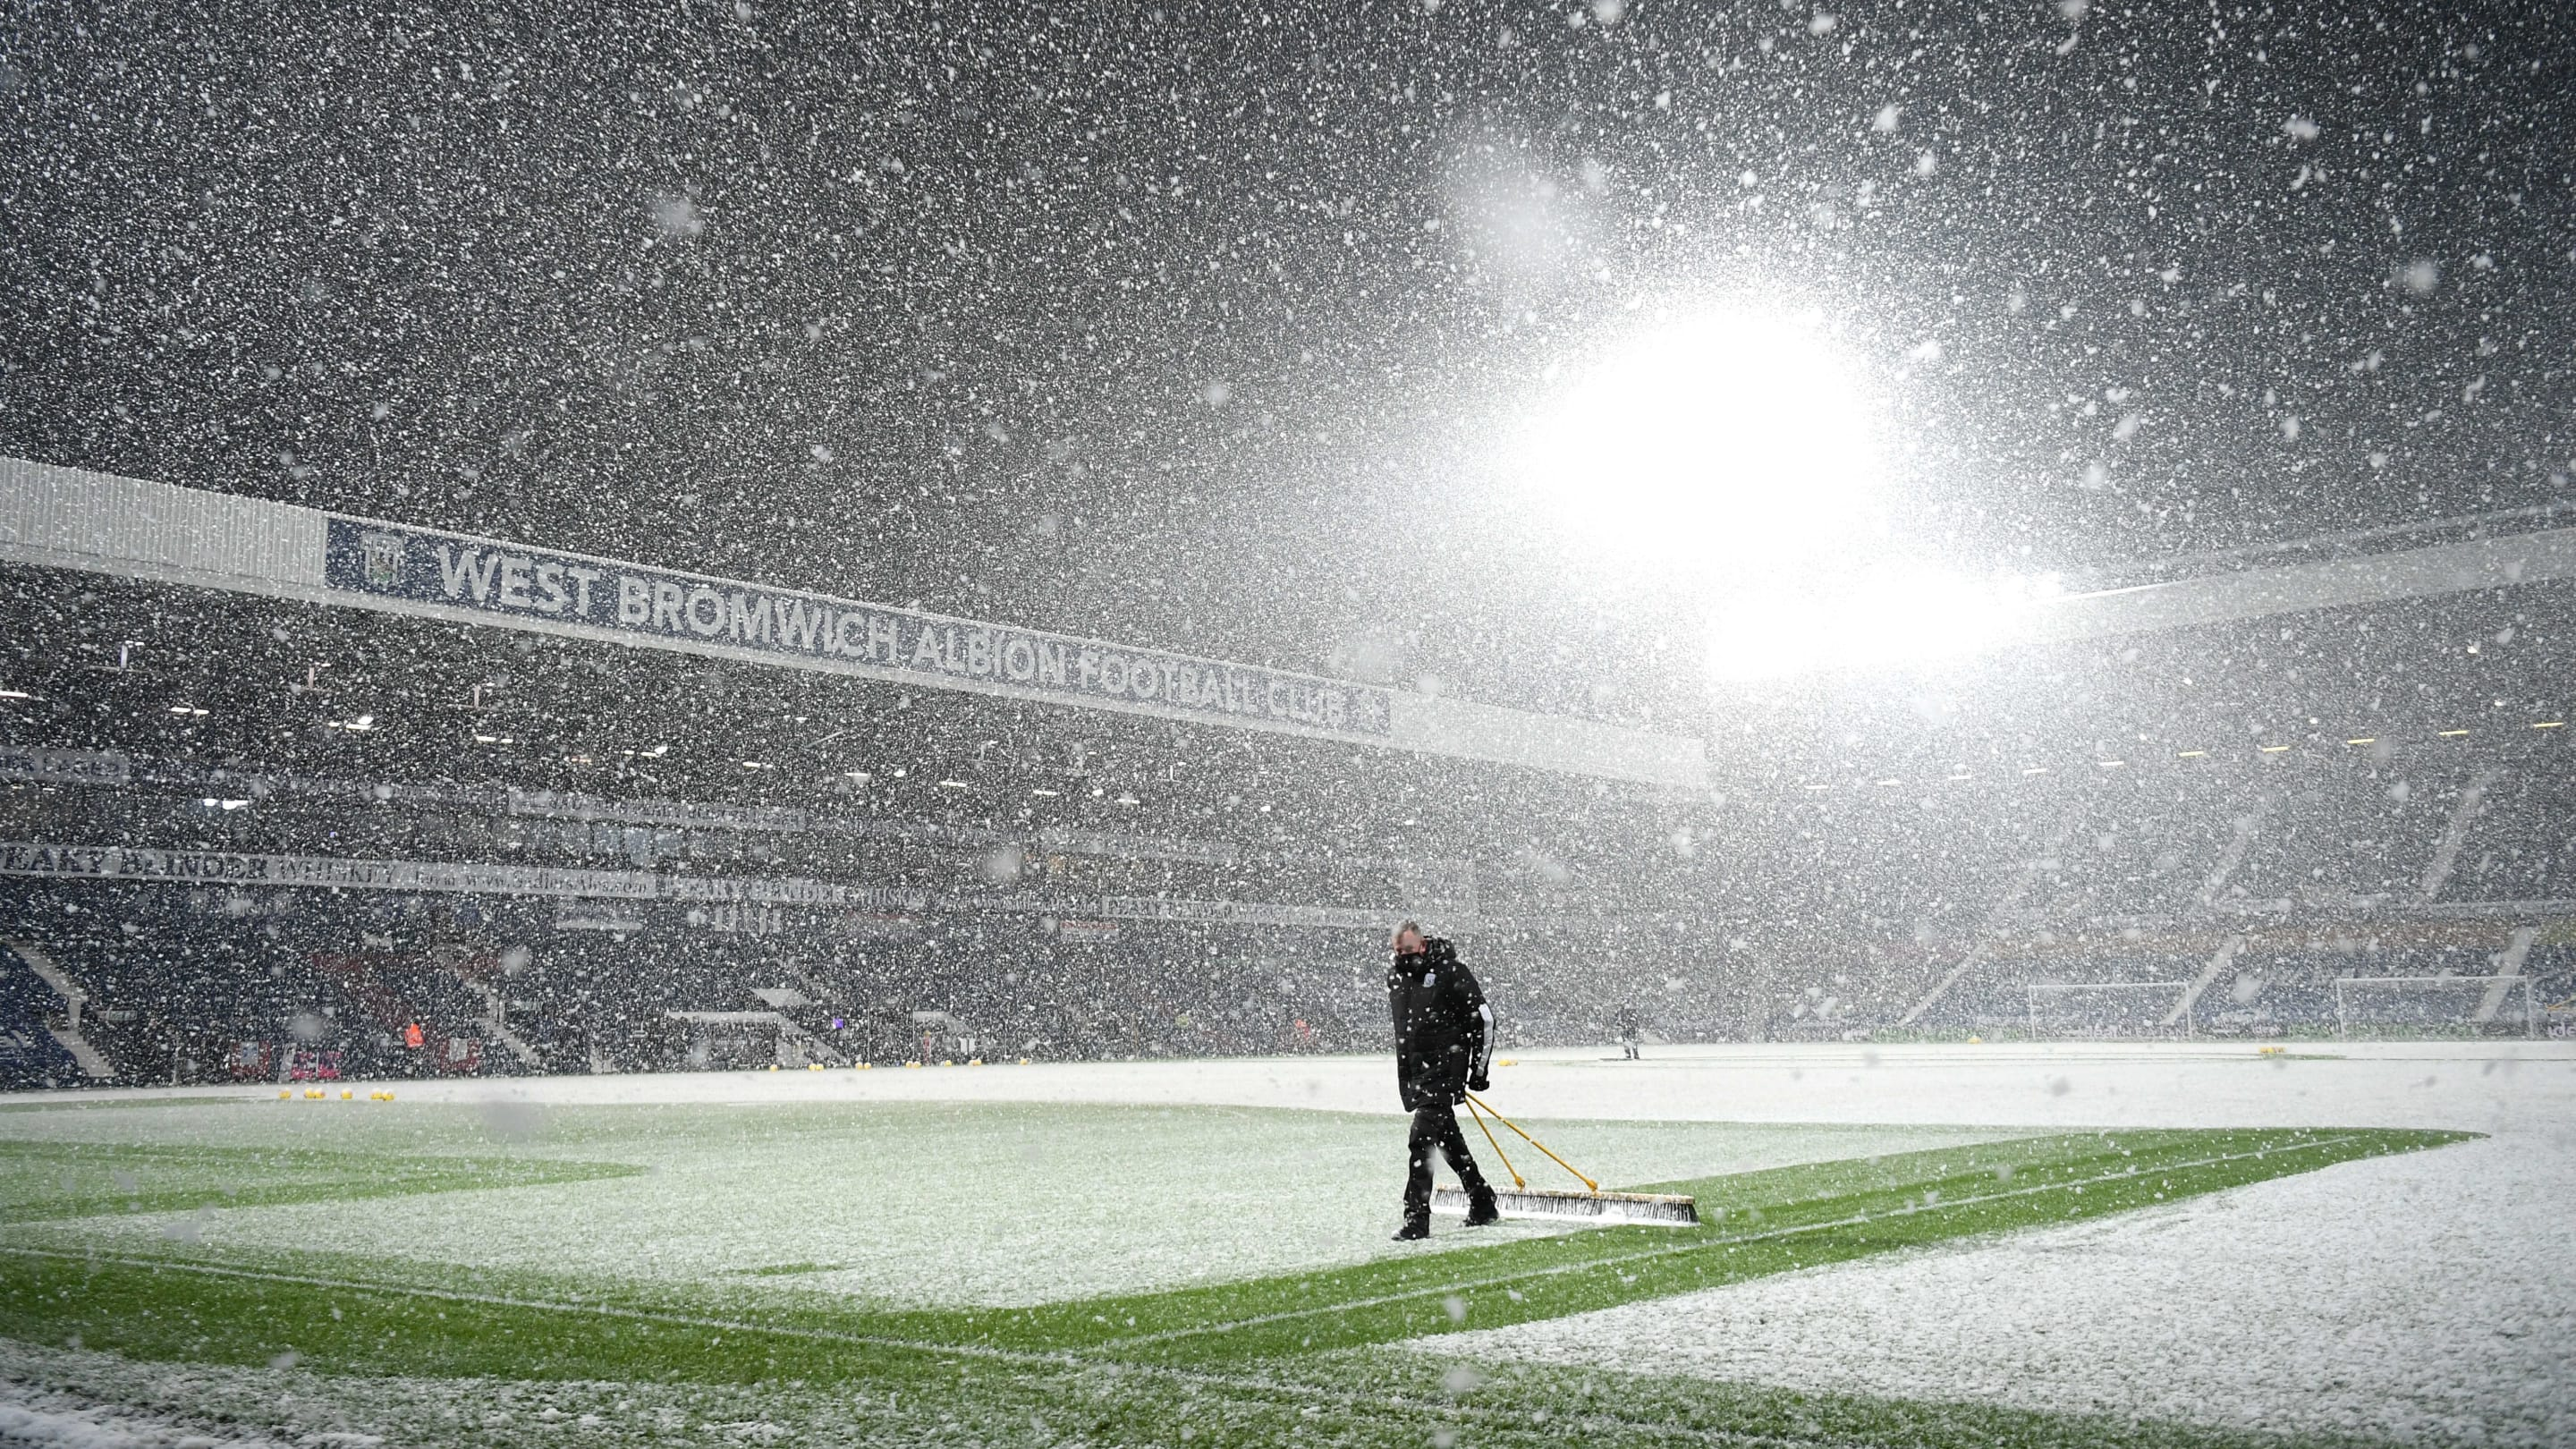 Twitter reacts as snow storm (temporarily) threatens Arsenal's trip to West Brom